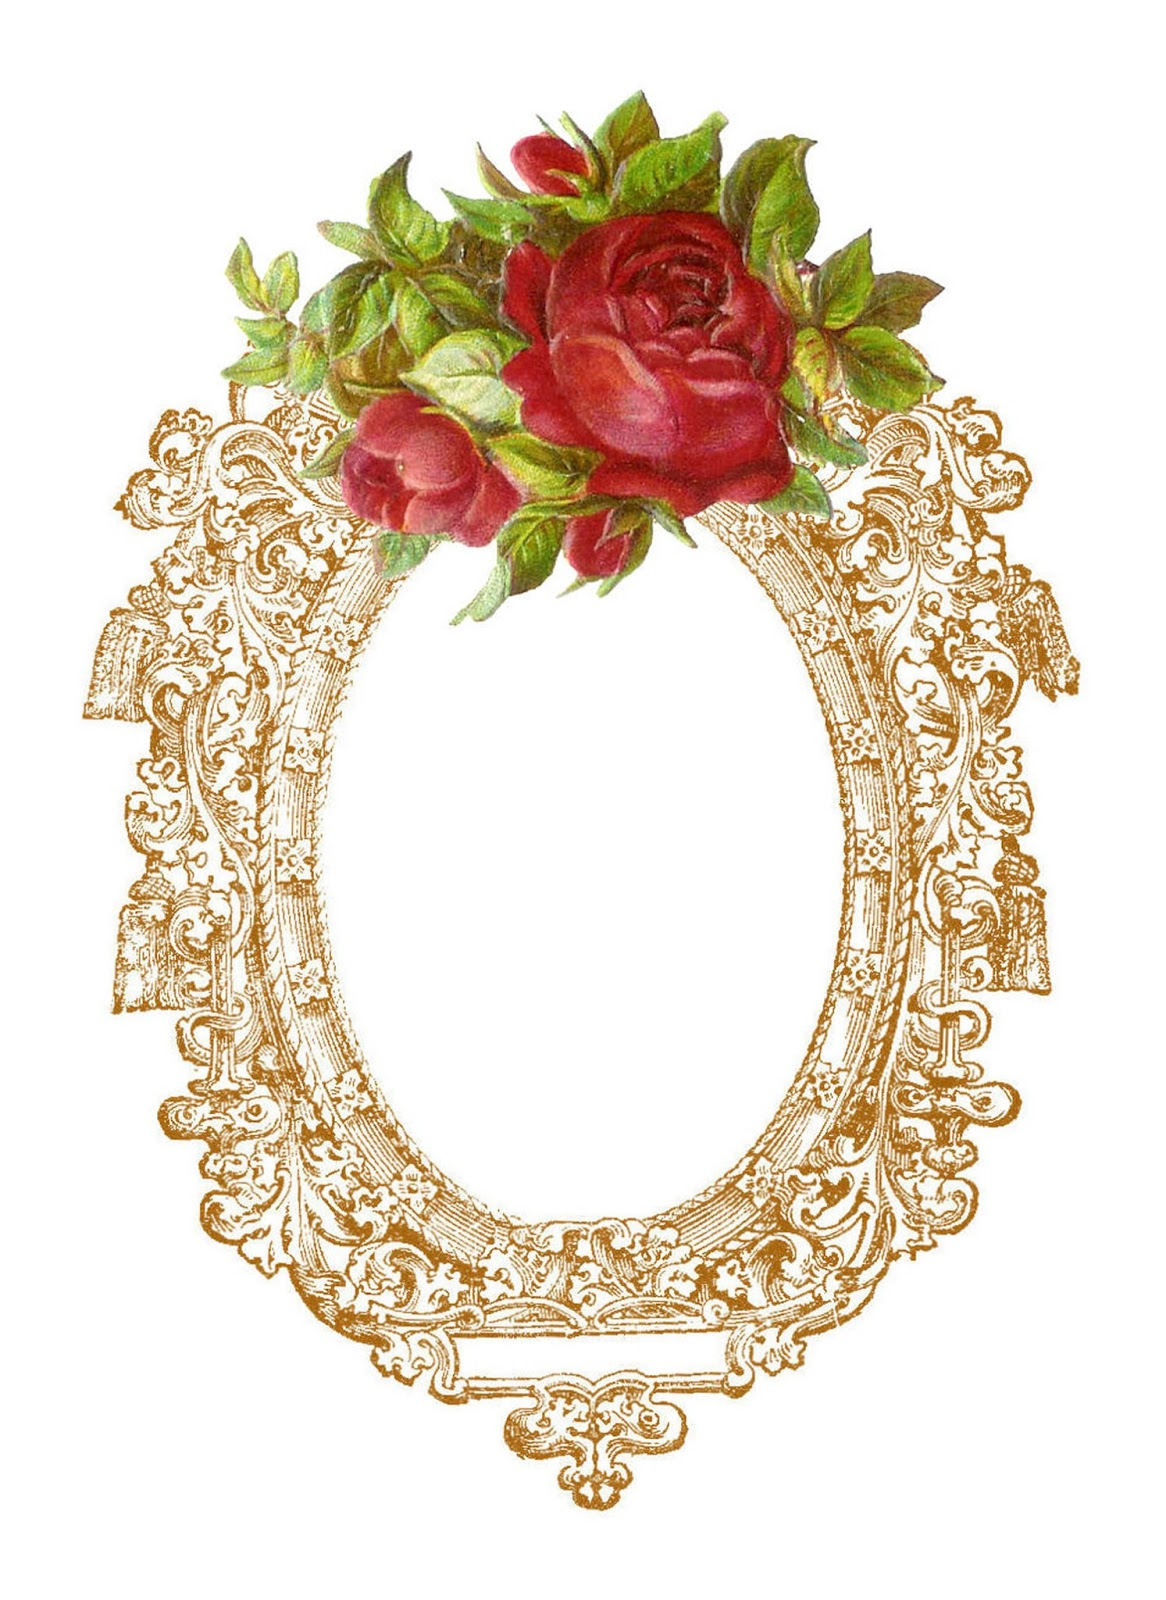 4 Images of Free Printable Vintage Frames